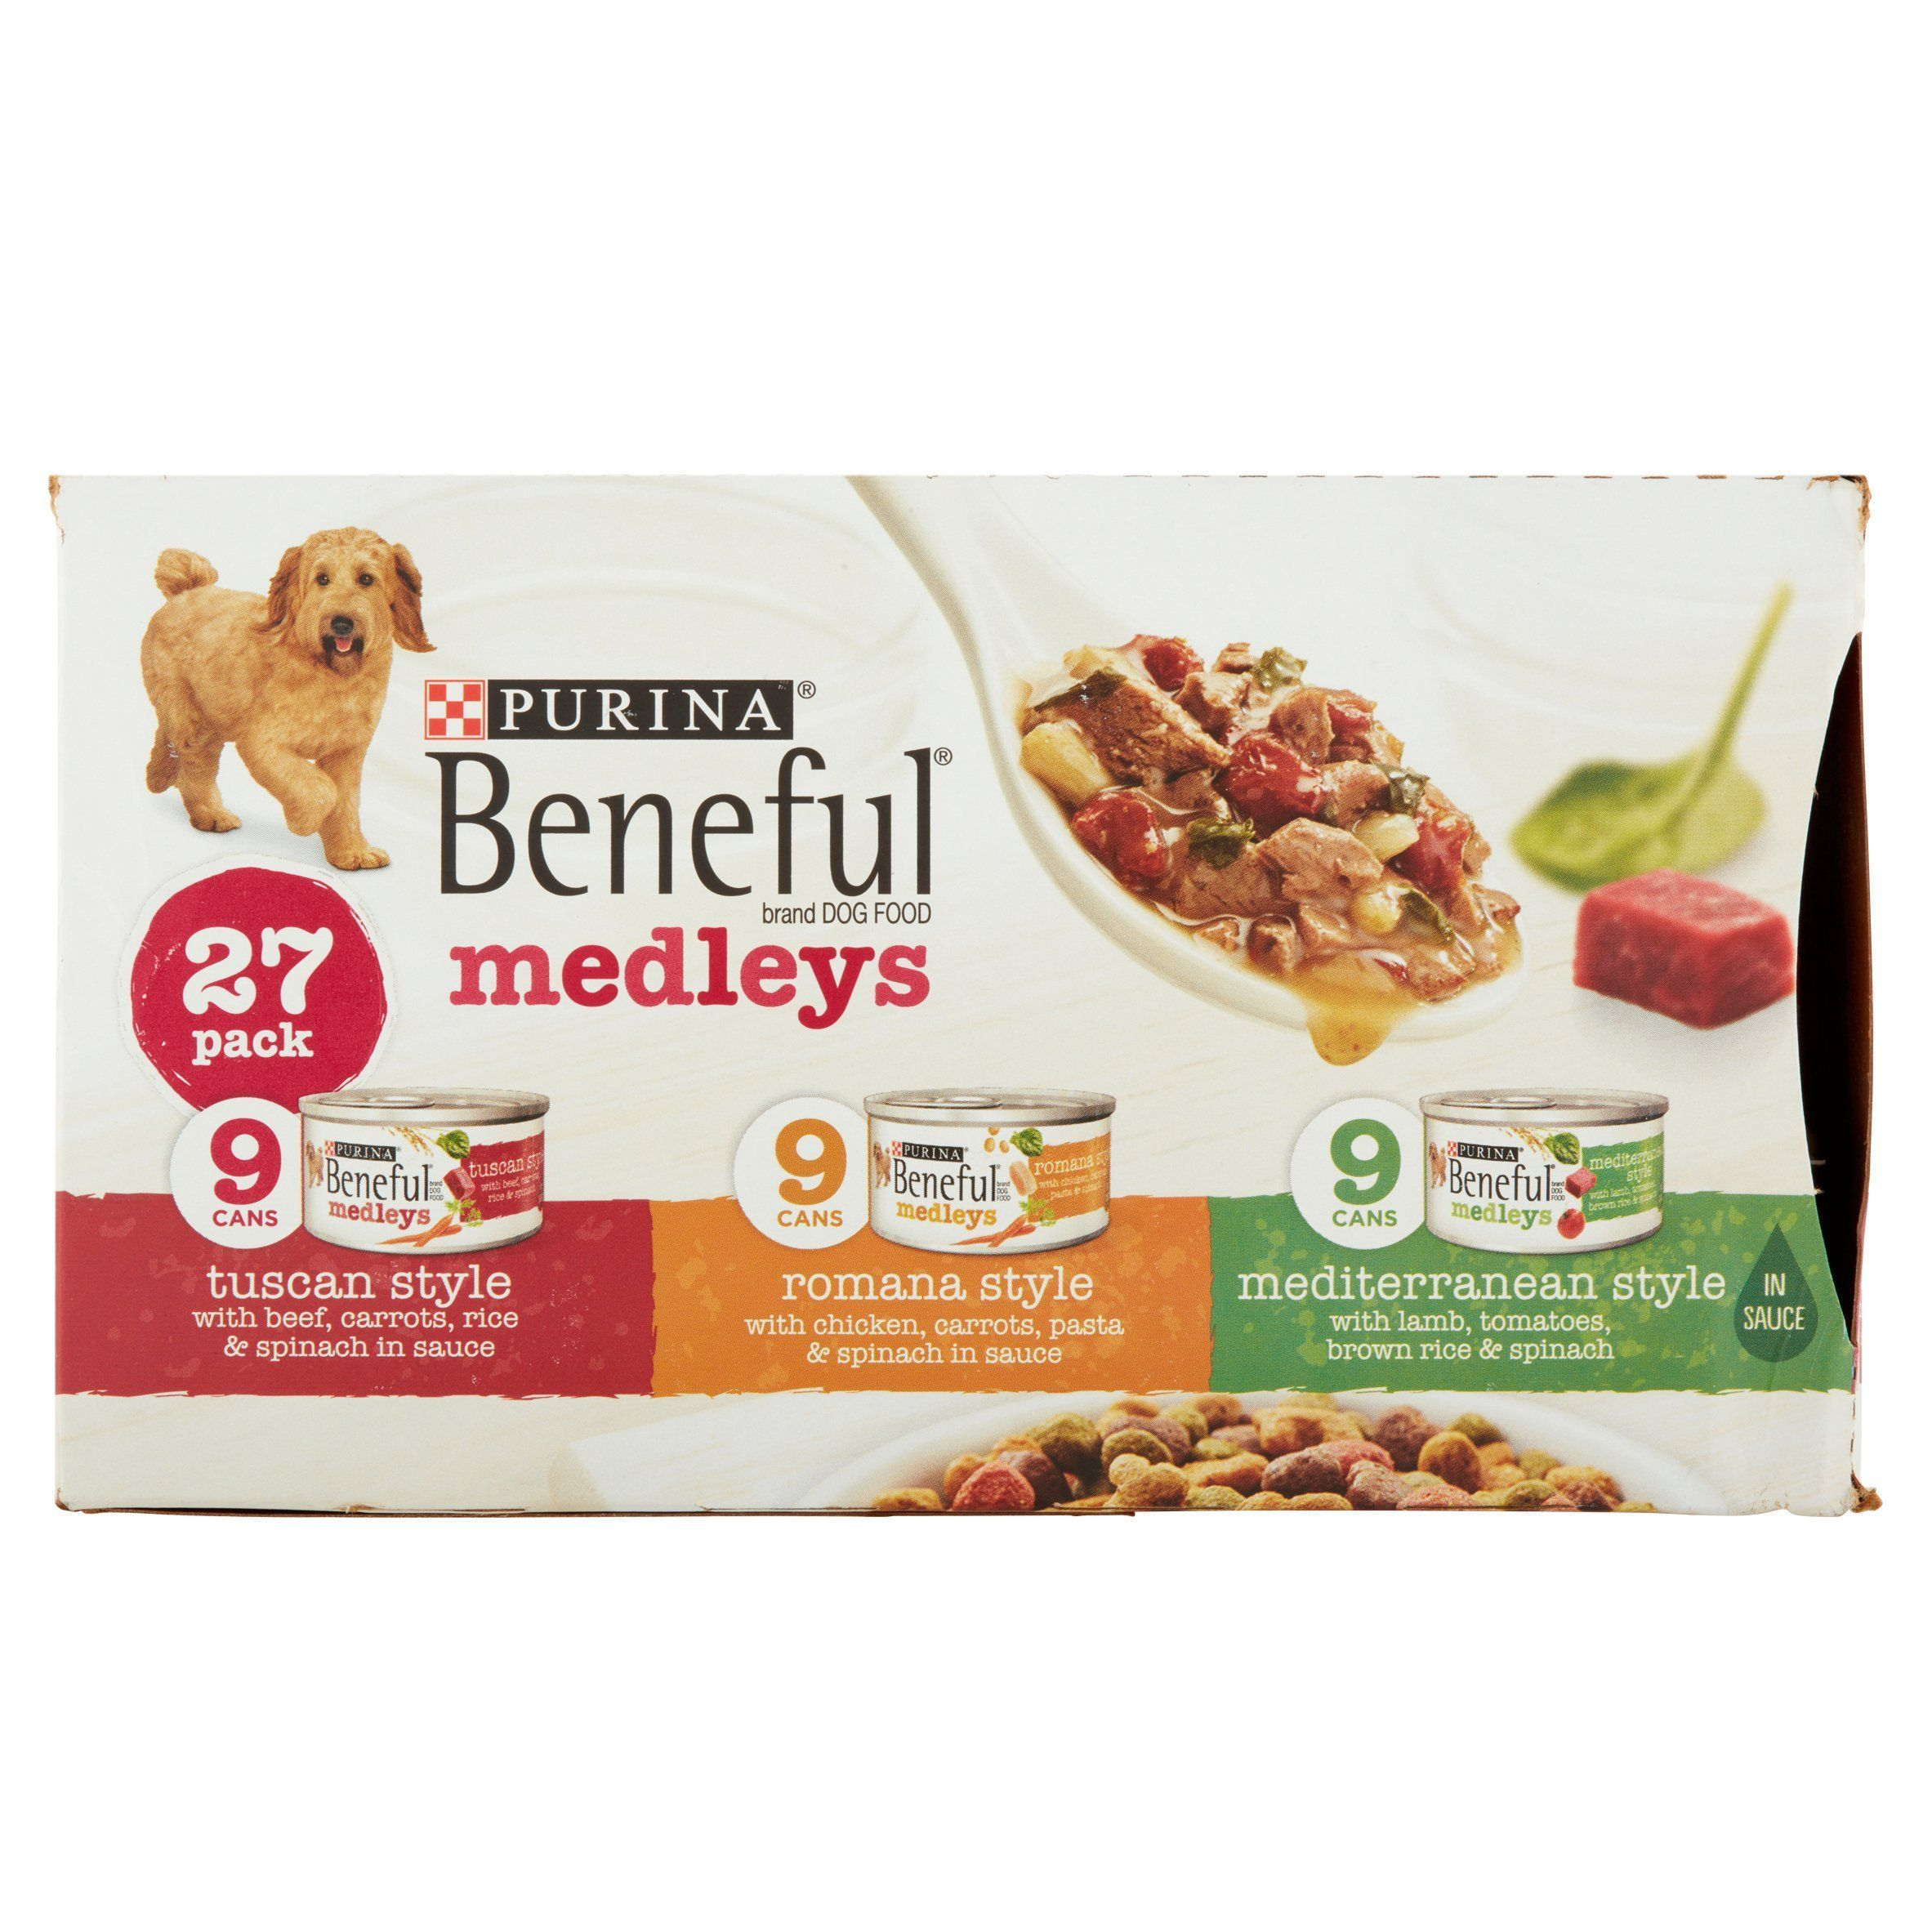 Purina Beneful Medleys Variety Pack Dog Food 273 Oz Cans 4 Pack